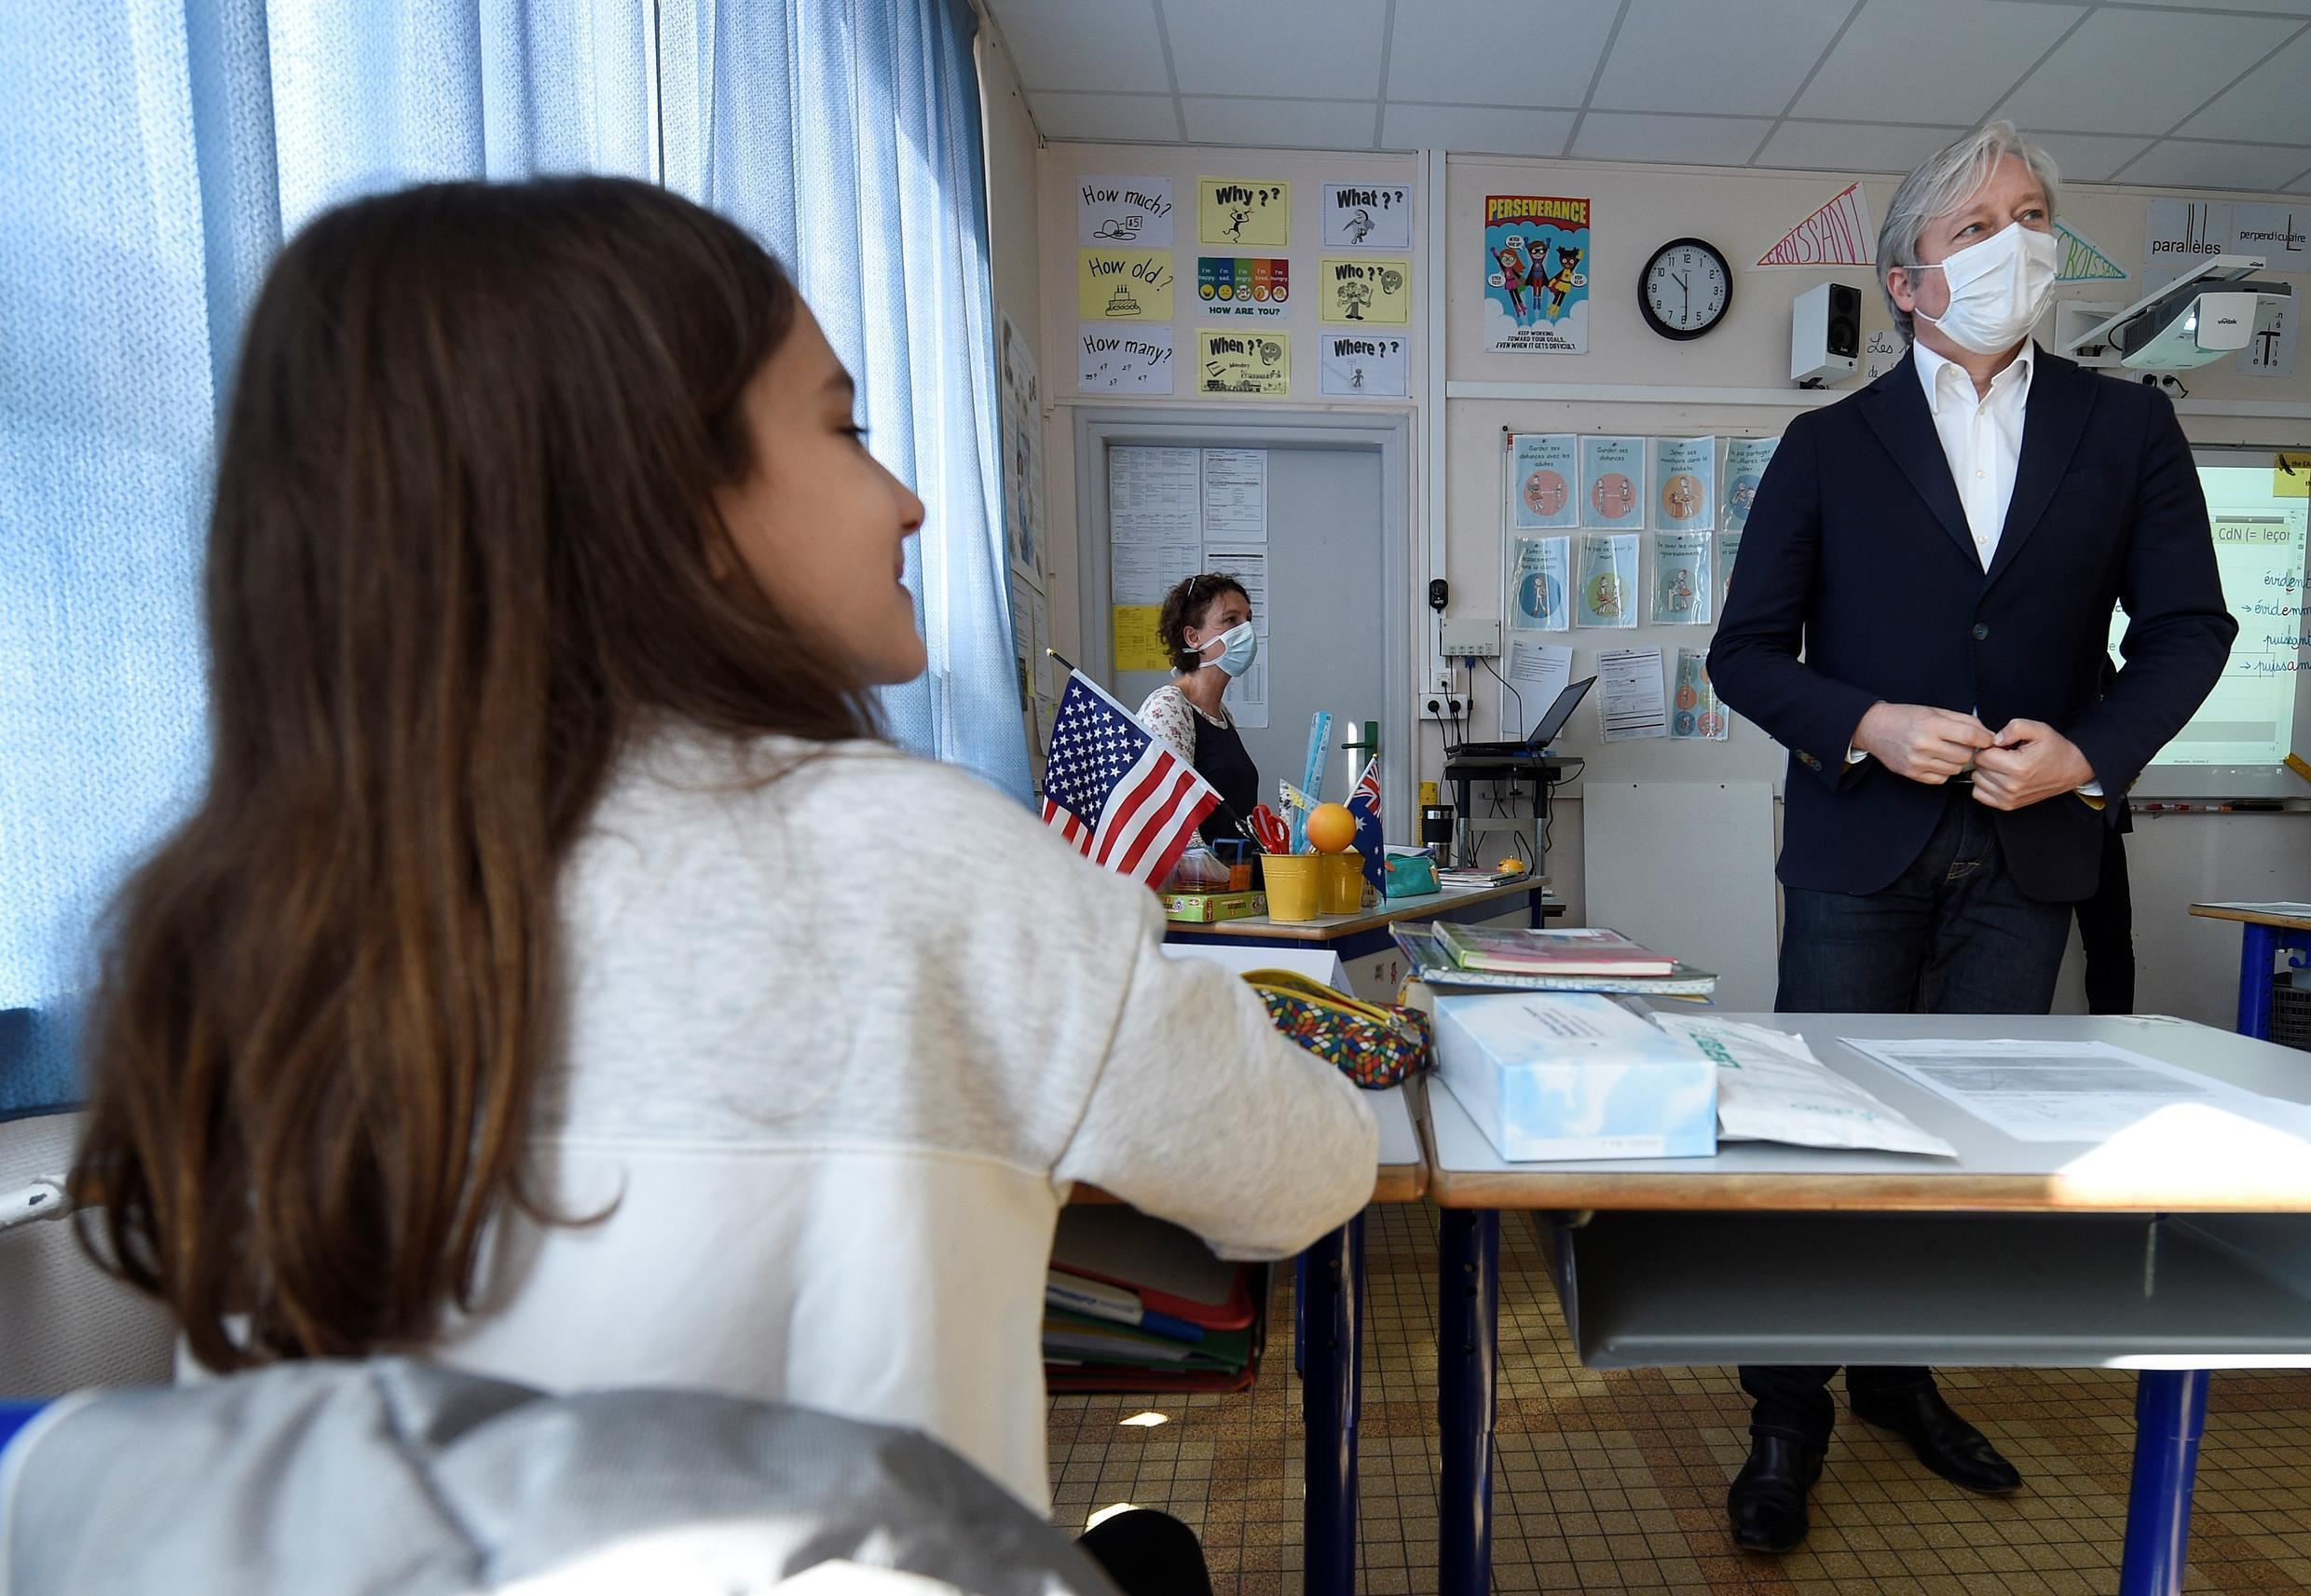 The Mayor of Nancy, Laurent Henart, visits the Placieux elementary school in Villers-les-Nancy, two days after France eased lockdown measures on May 11 to curb the spread of the COVID-19 pandemic.